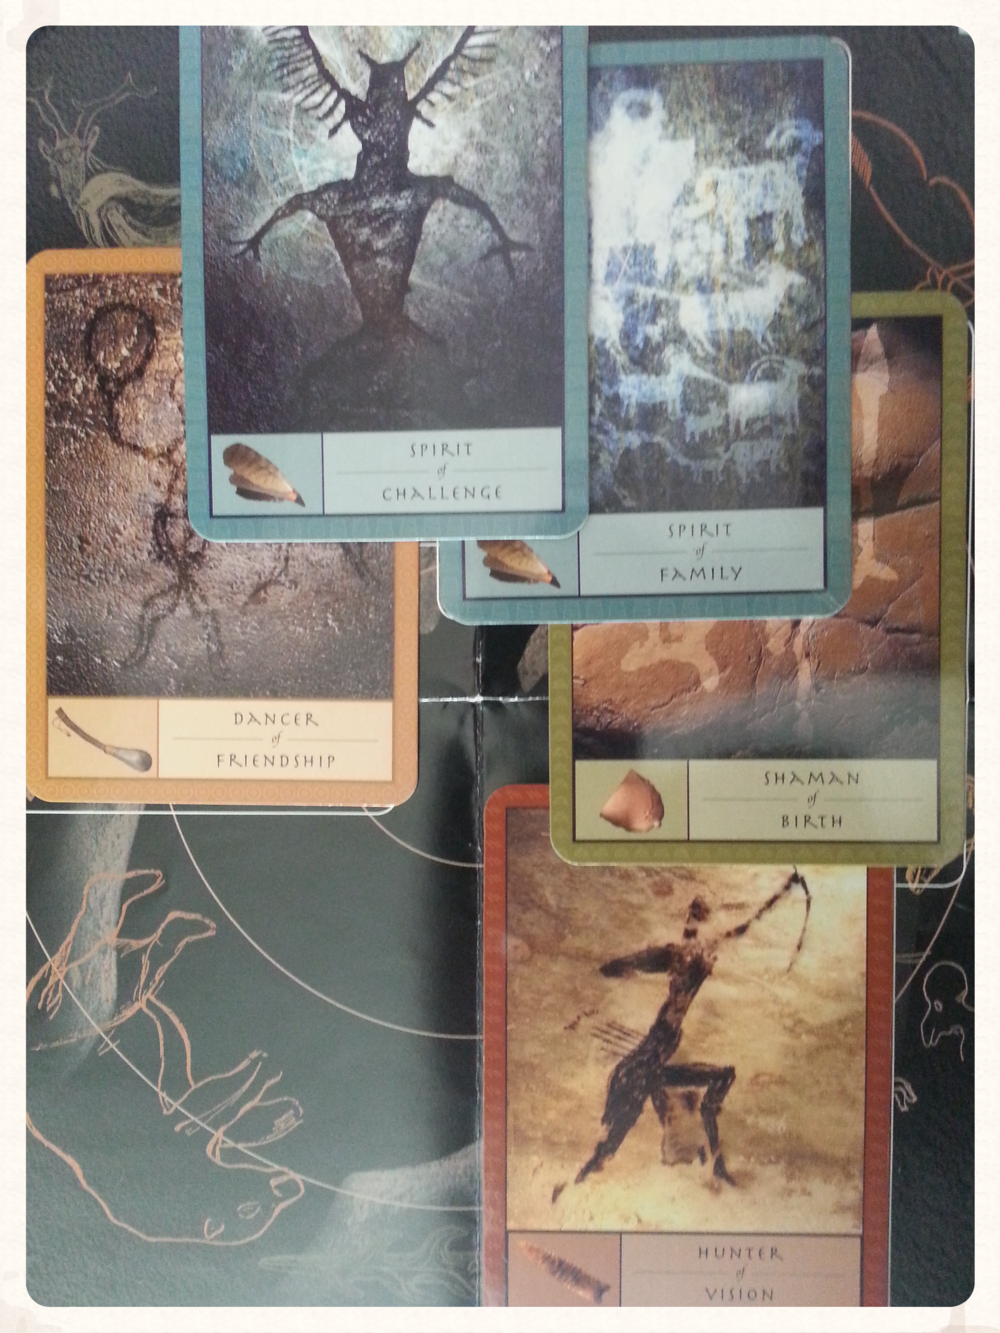 A SNEAK PEAK AT THIS WEEK'S CARDS: WE WILL TAKE A DEEPER LOOK AT THE RELATIONSHIP OF THESE EACH OF THESE CARDS AND THE MEANING OF IT'S CAVES AS THE WEEK PROGRESSES